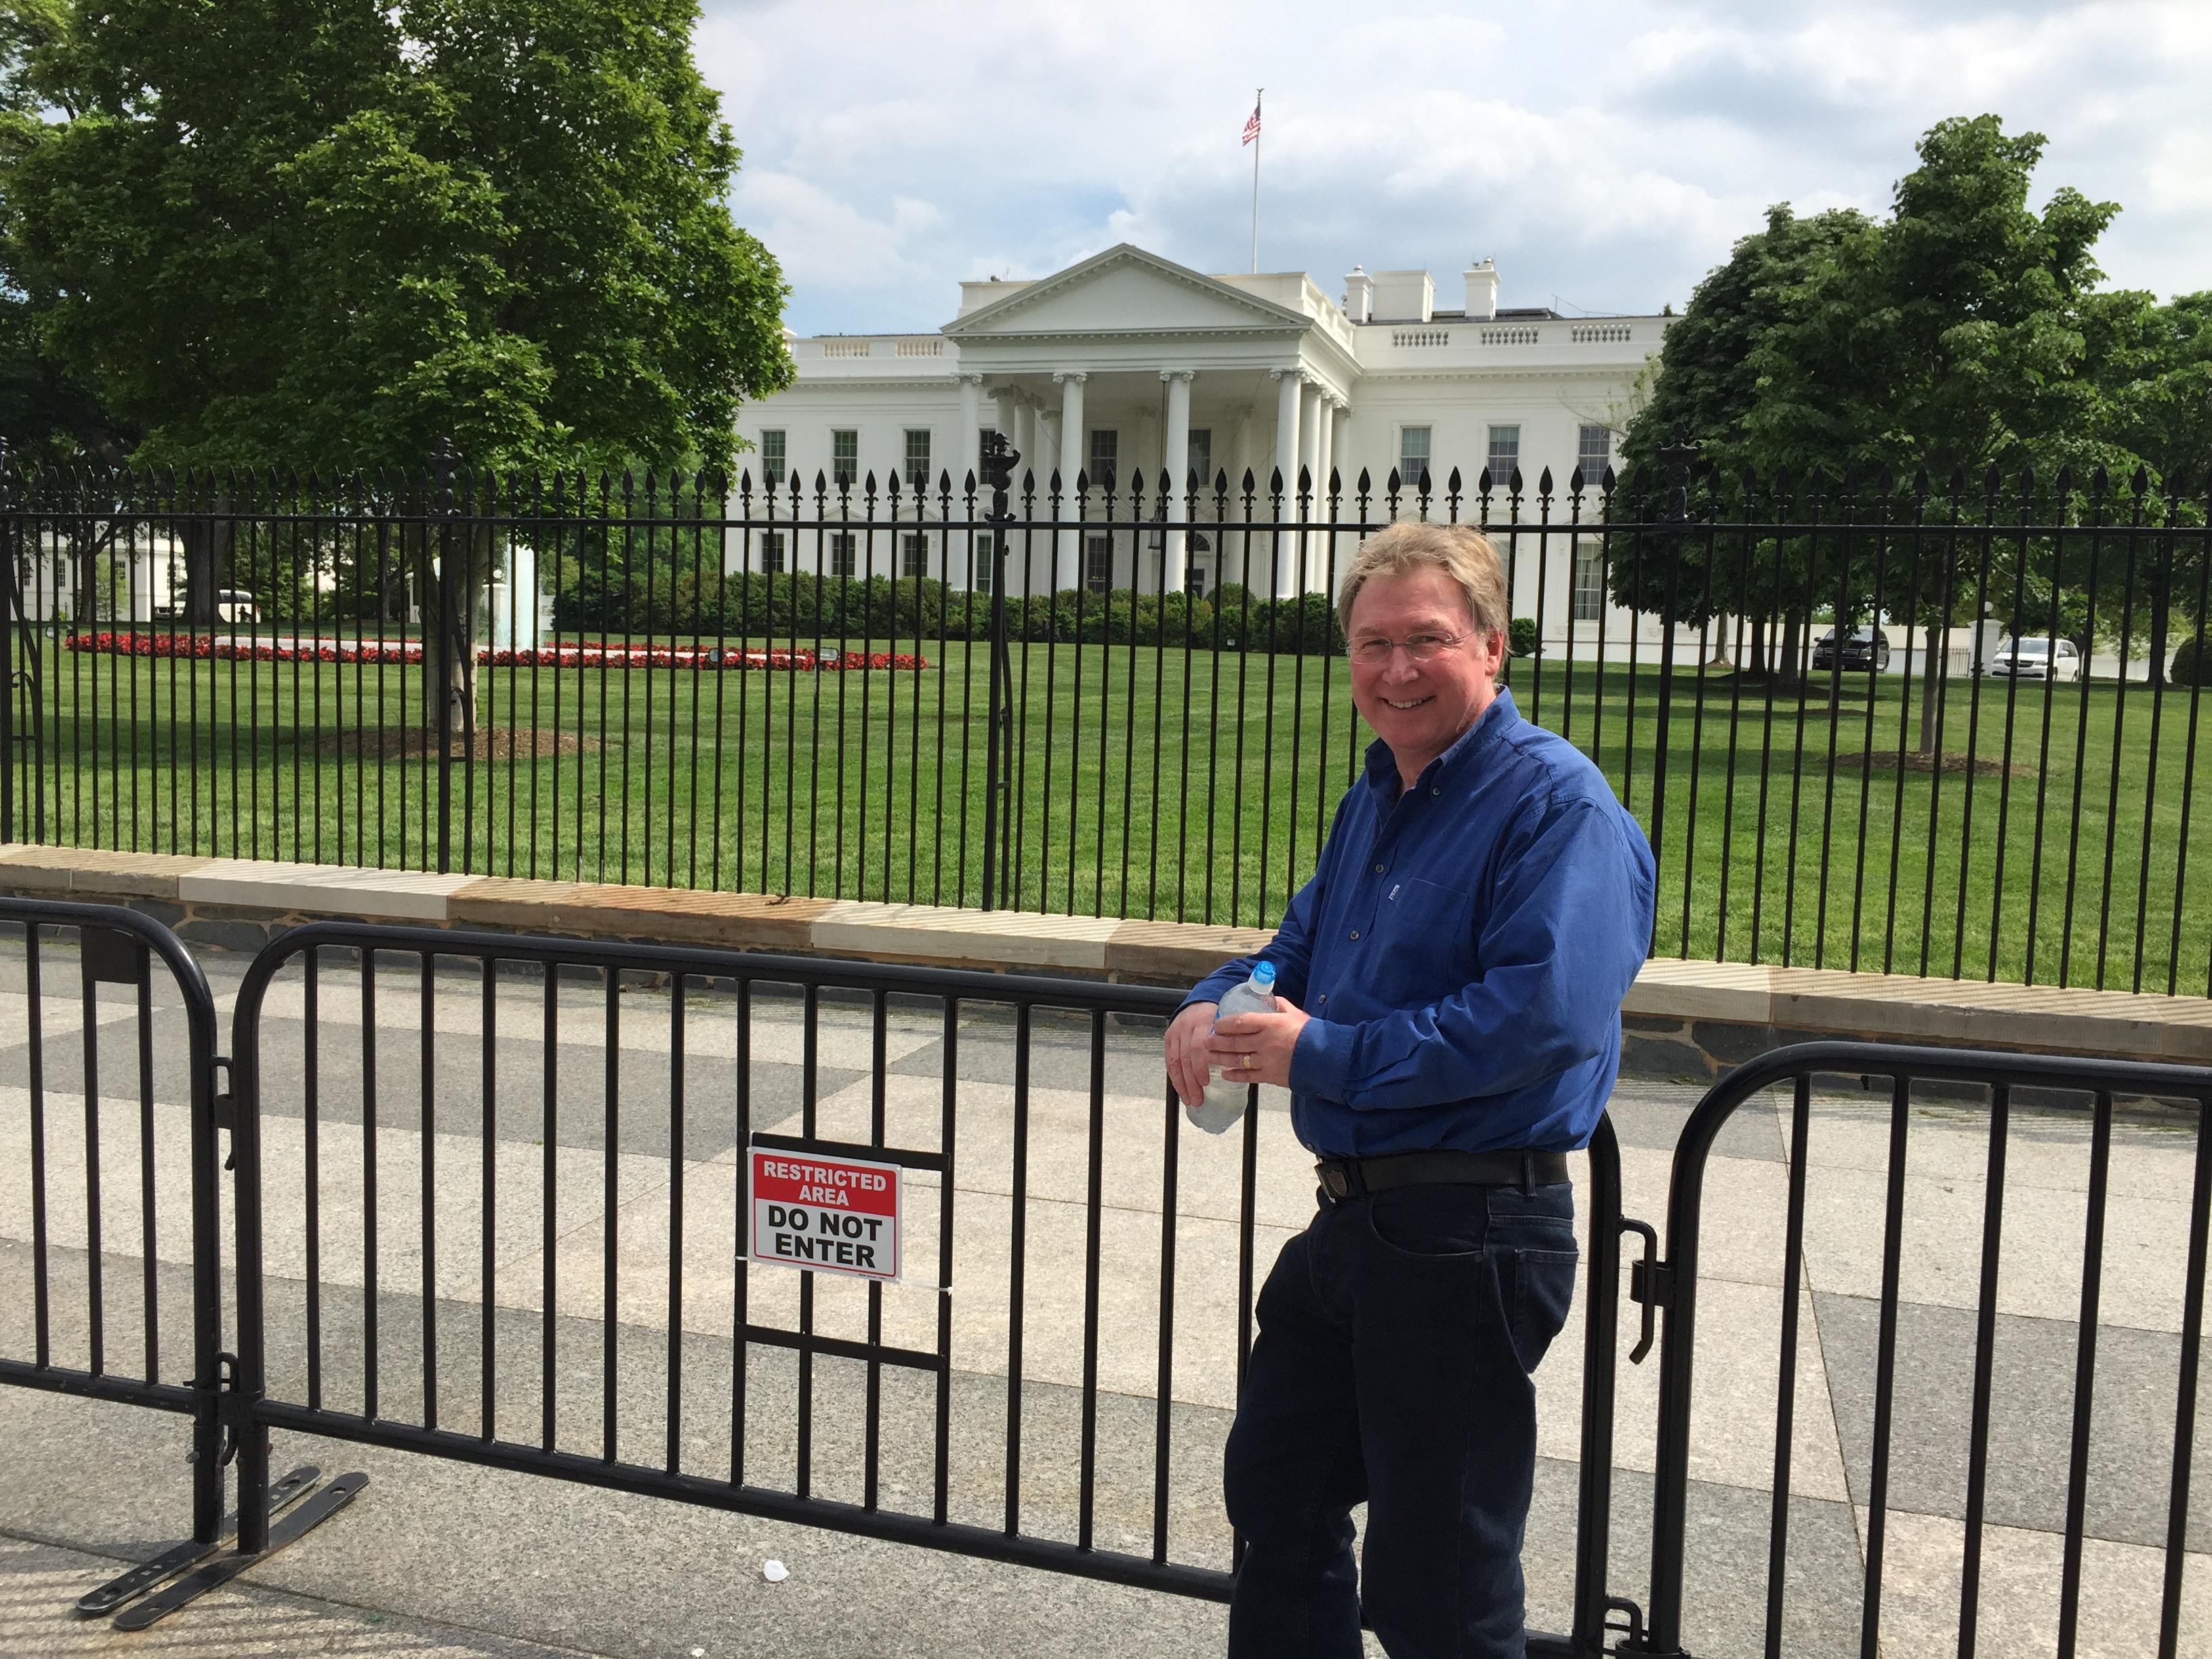 Vince stood against the barriers outside the White House